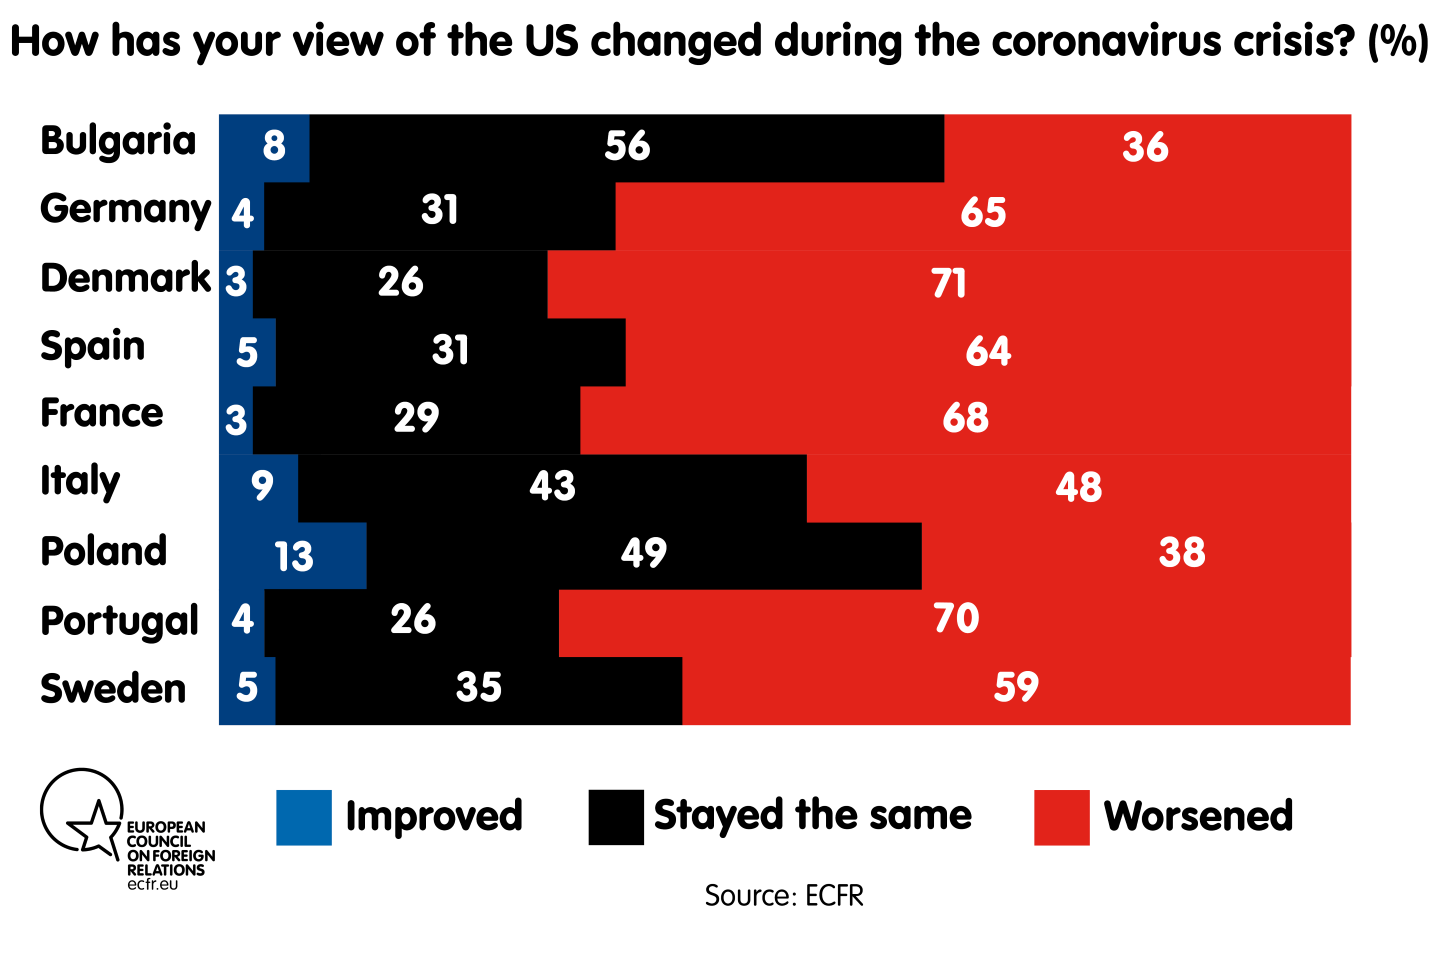 How has your view of the US changed during the coronavirus crisis?